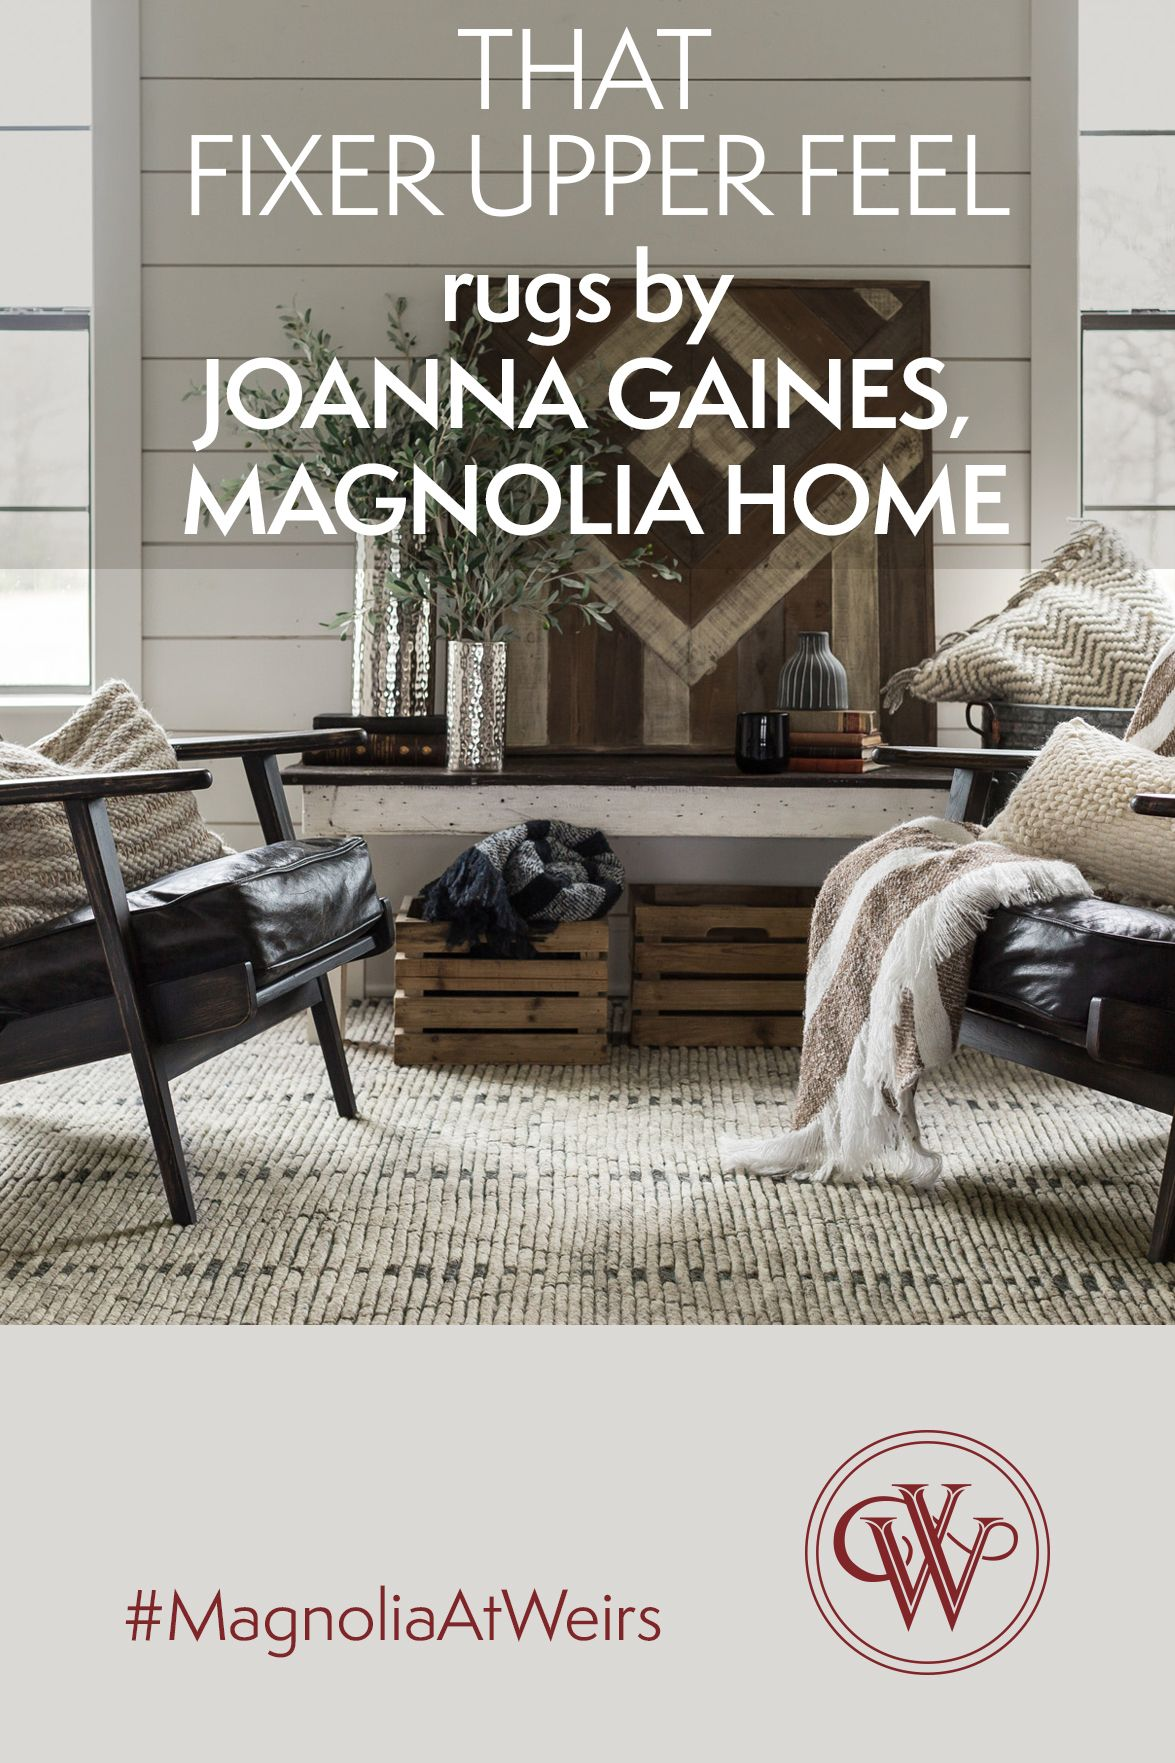 and area rugs showcases simple timeless company oh home style of hanooh joanna charm country loloi designer s upper by granite yet hanover quaint rug magnolia p fixer fresh with gaines